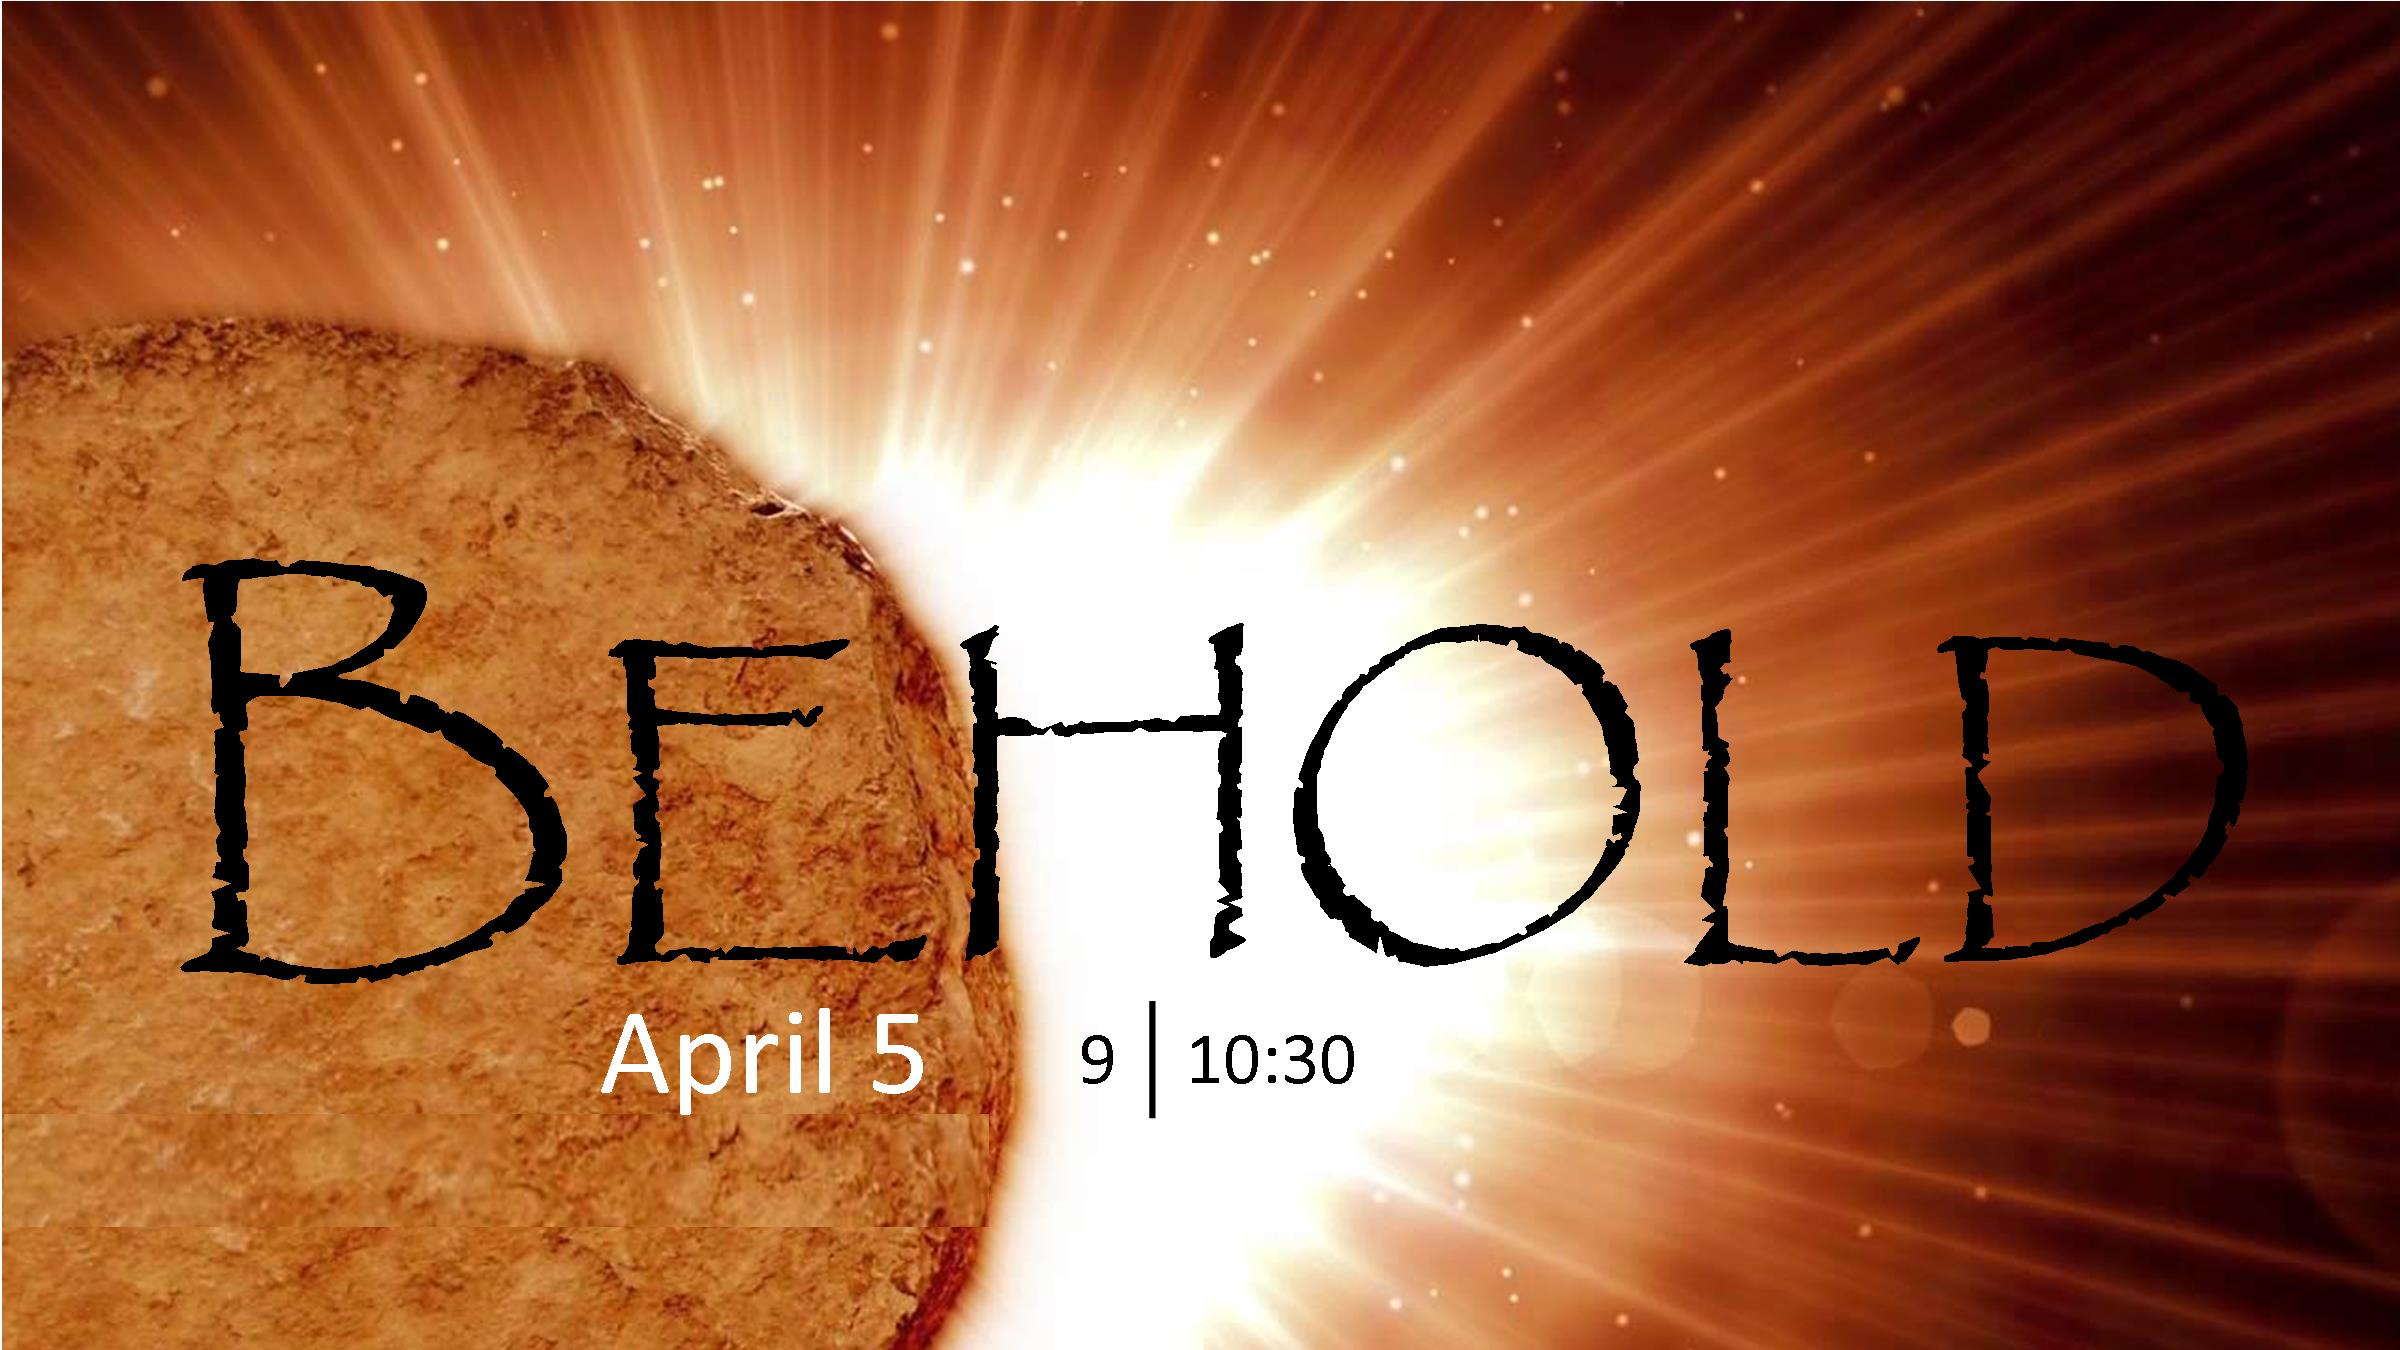 He is Risen! Worship services at 9:00 and 10:30